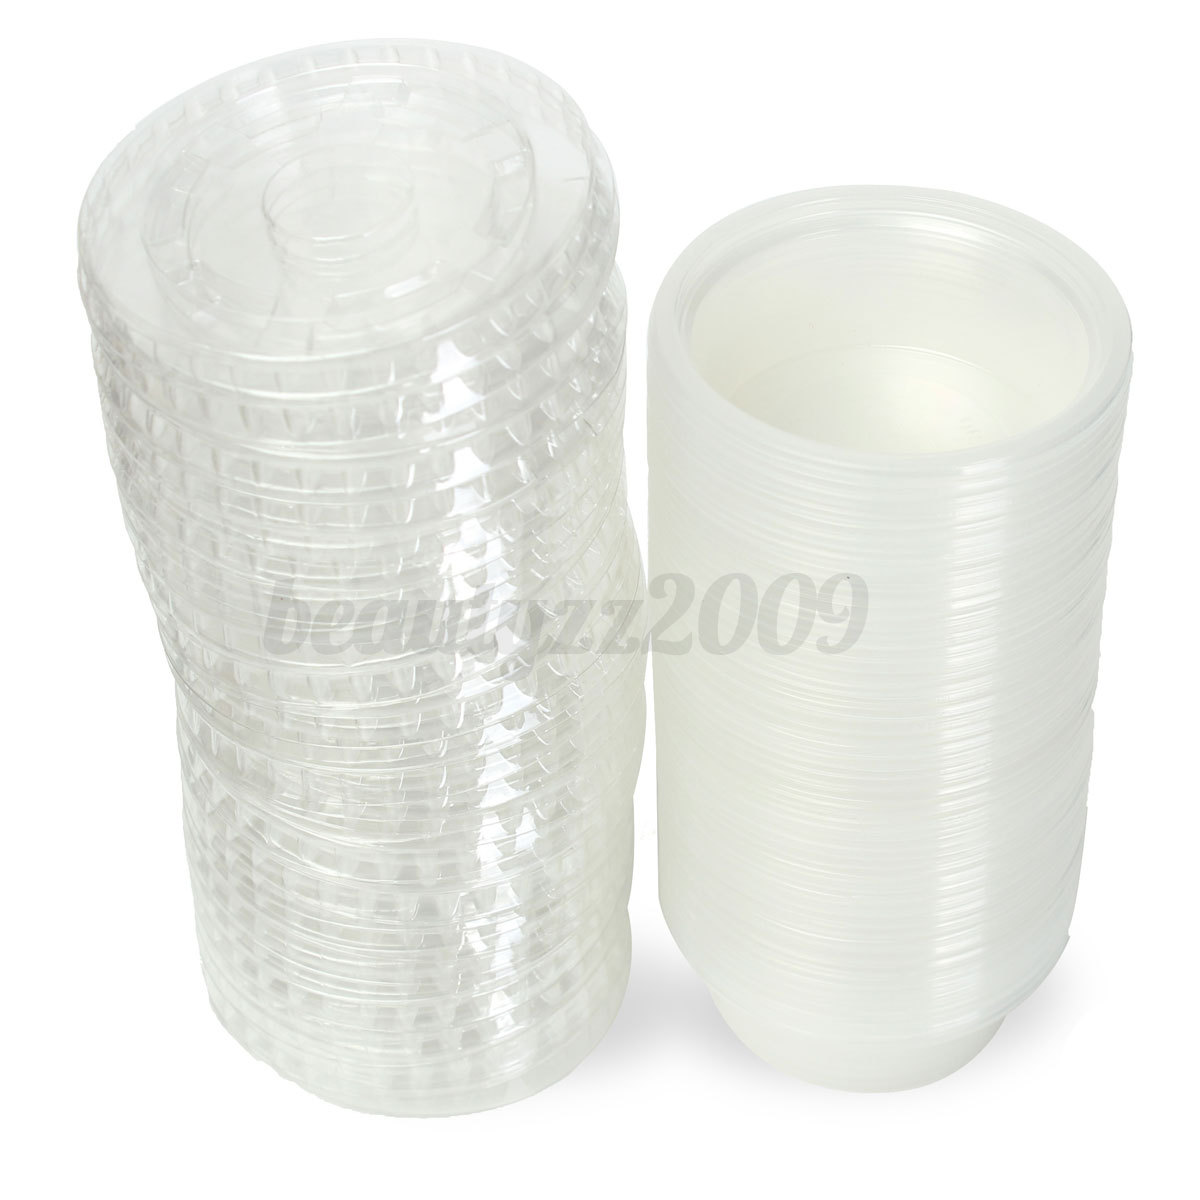 Plastic Cups With Lids : Pcs disposable clear plastic chutney cups food container